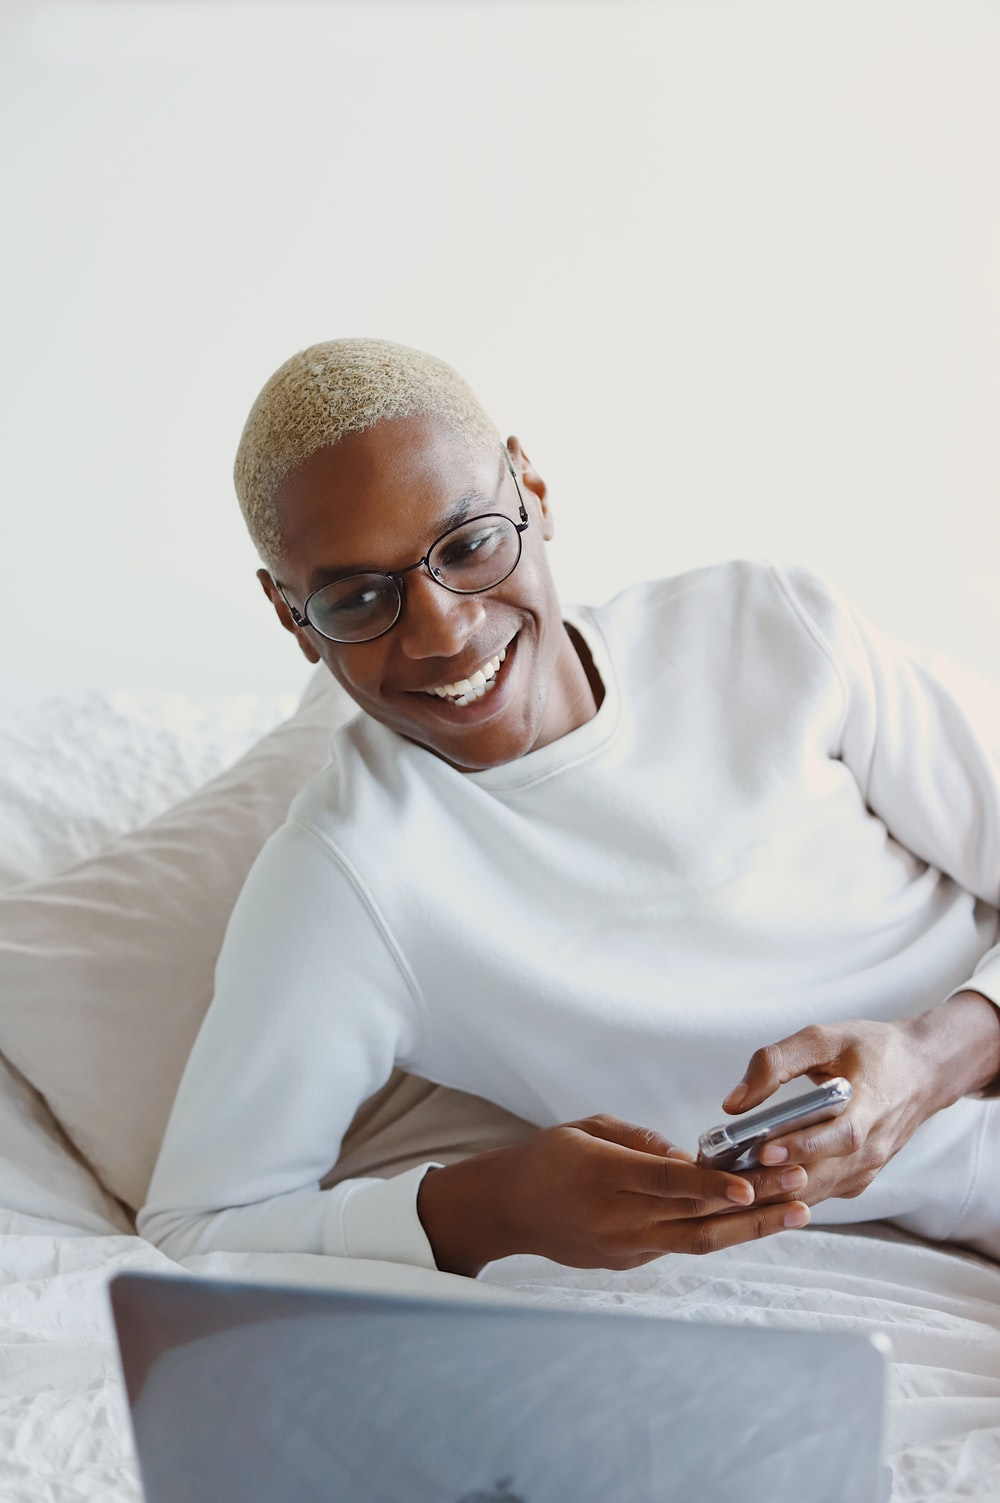 woman in white turtleneck sweater holding smartphone